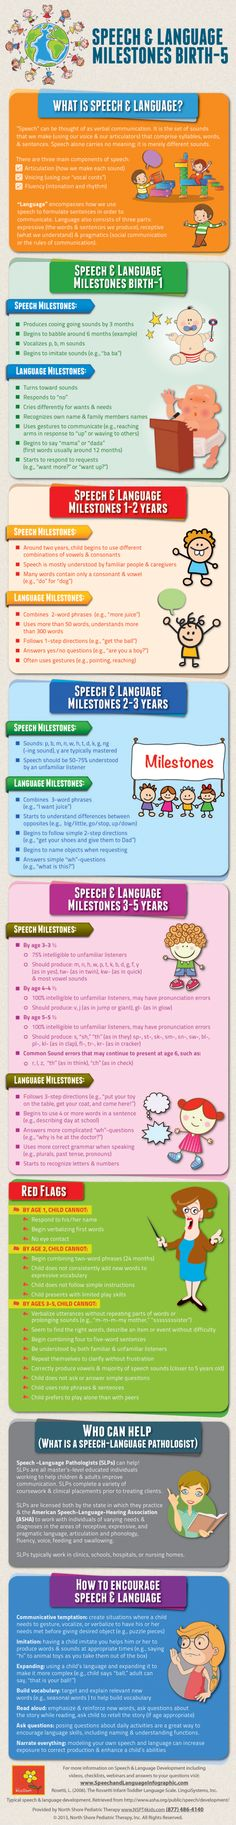 Speech and Language Milestones Birth-5 Infographic